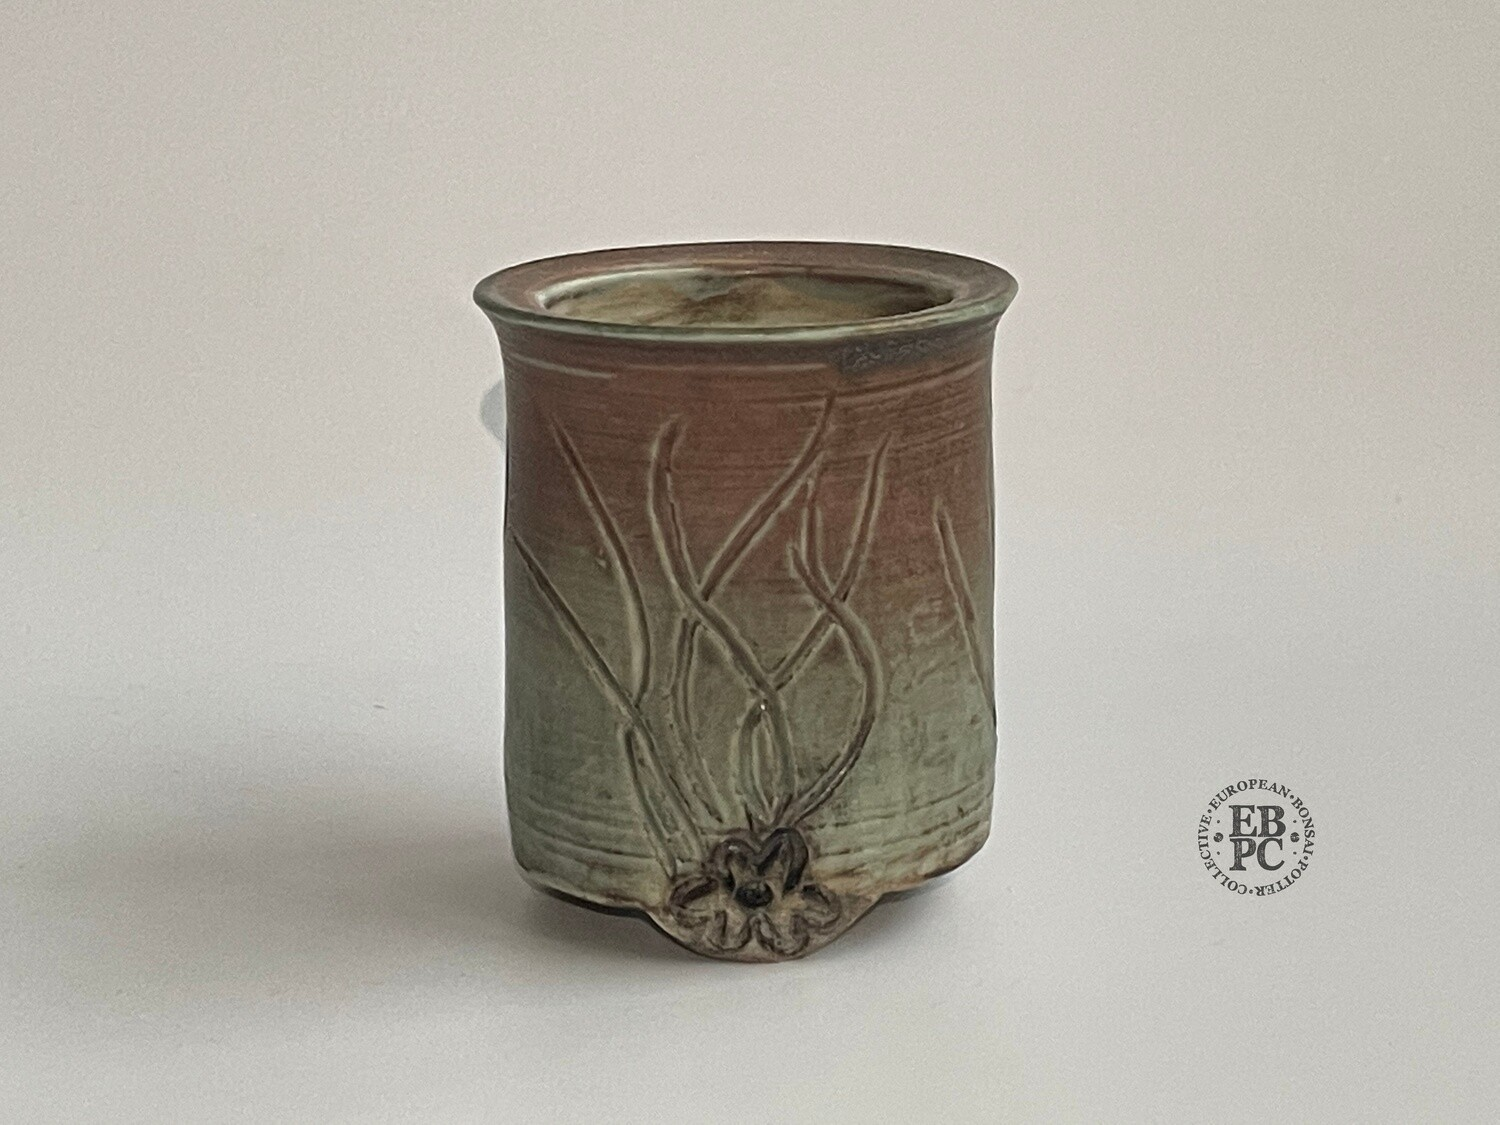 EBL Pots - 7cm Tall; Porcelain; Mame / Accent Pot; Carved; Round; Seaweed Green & Peach; Detailed feet; Elsebeth Ludvigsen